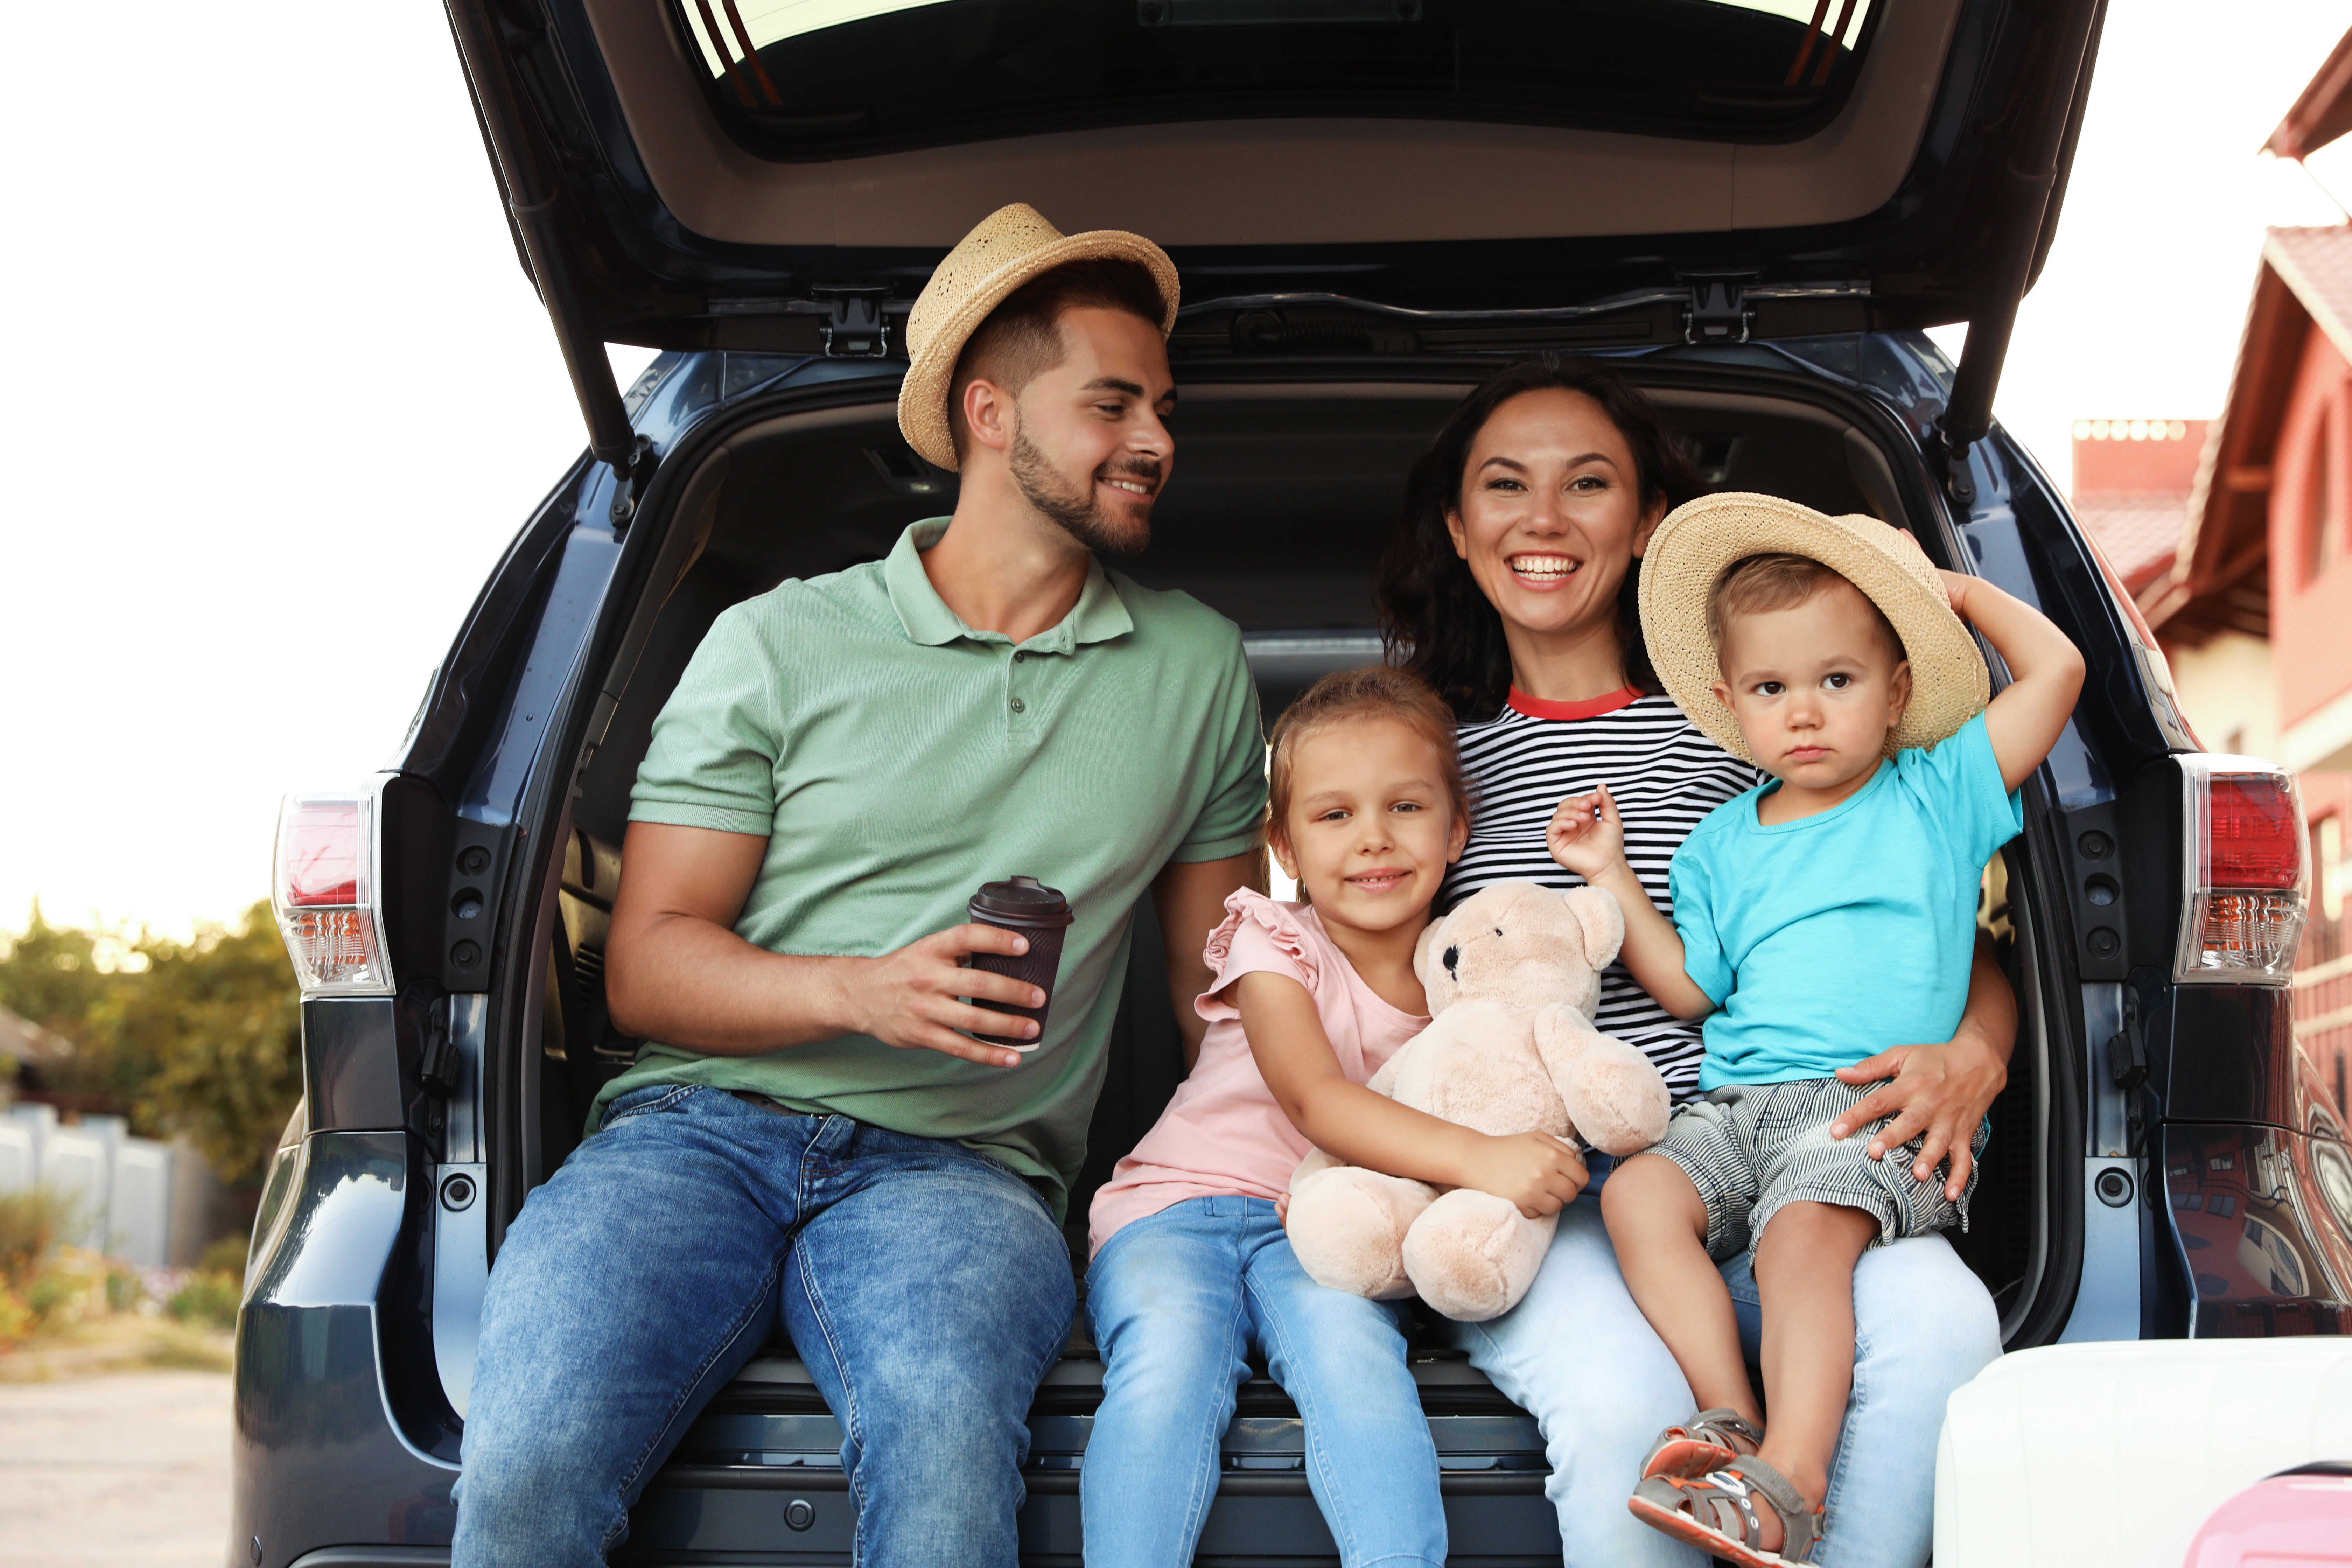 Car Trunk Family Image